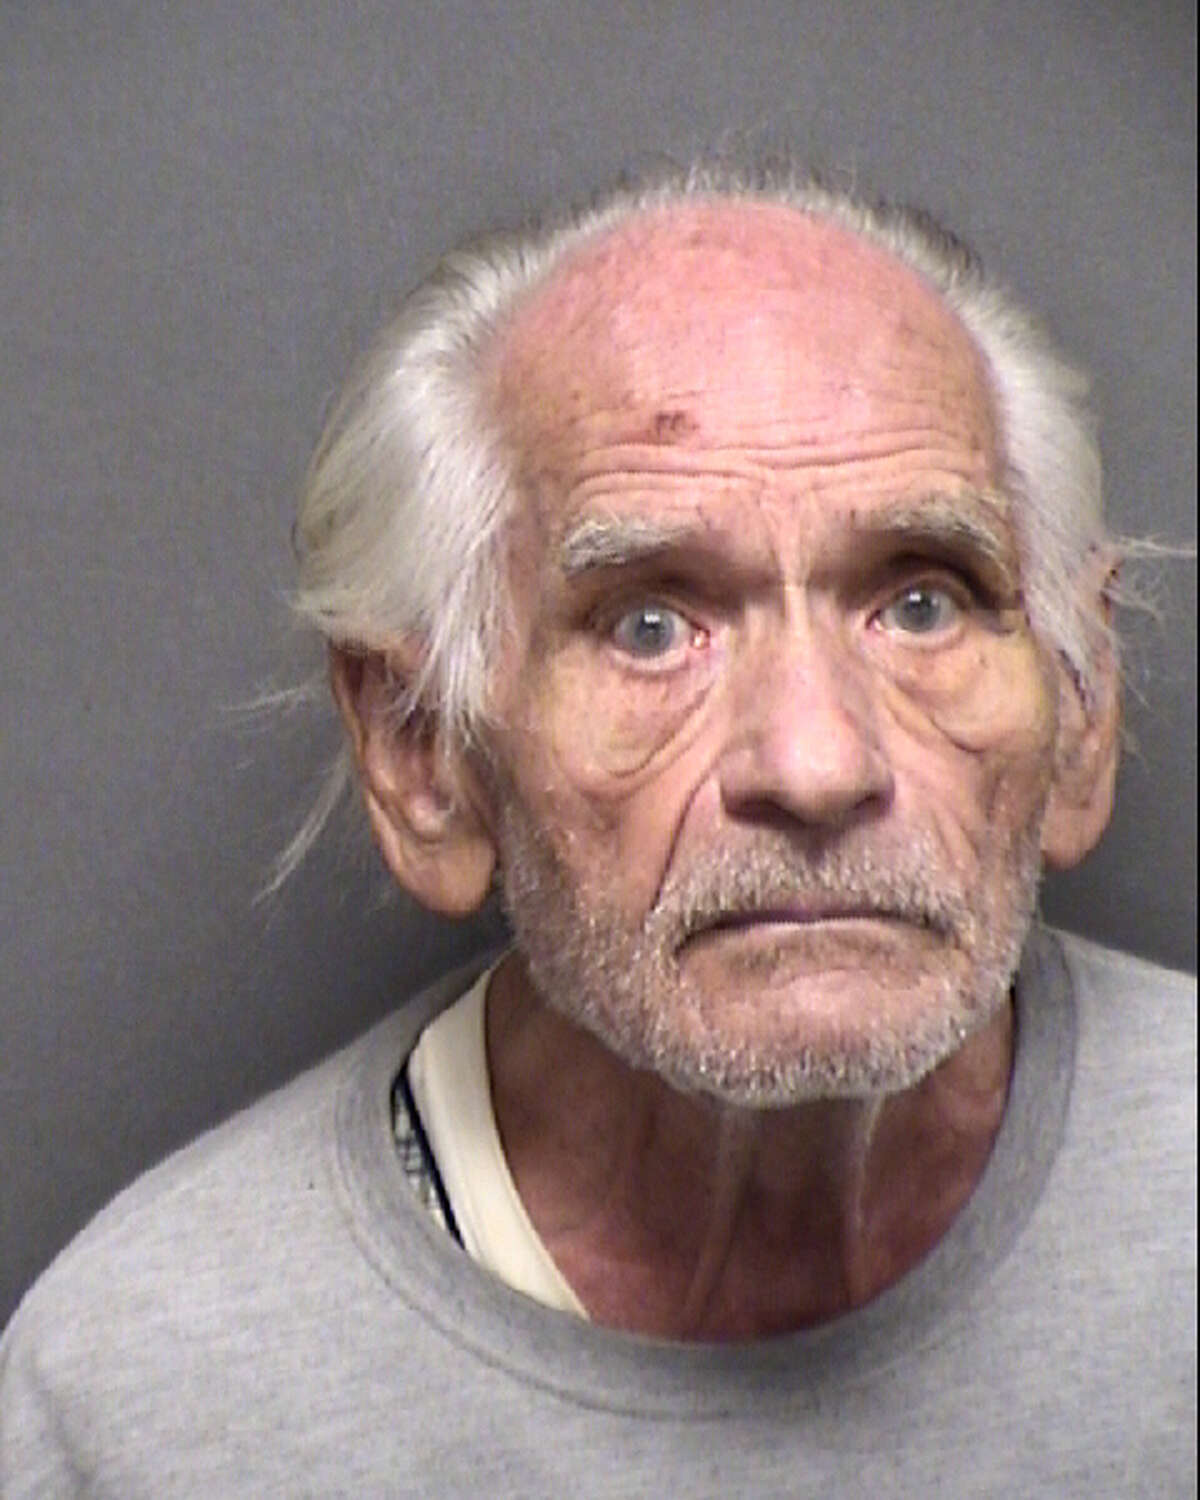 George Lee Holland, 89, who was accused of killing his wife, died in police custody after having a medical episode in the Bexar County Jail on Sept. 22.